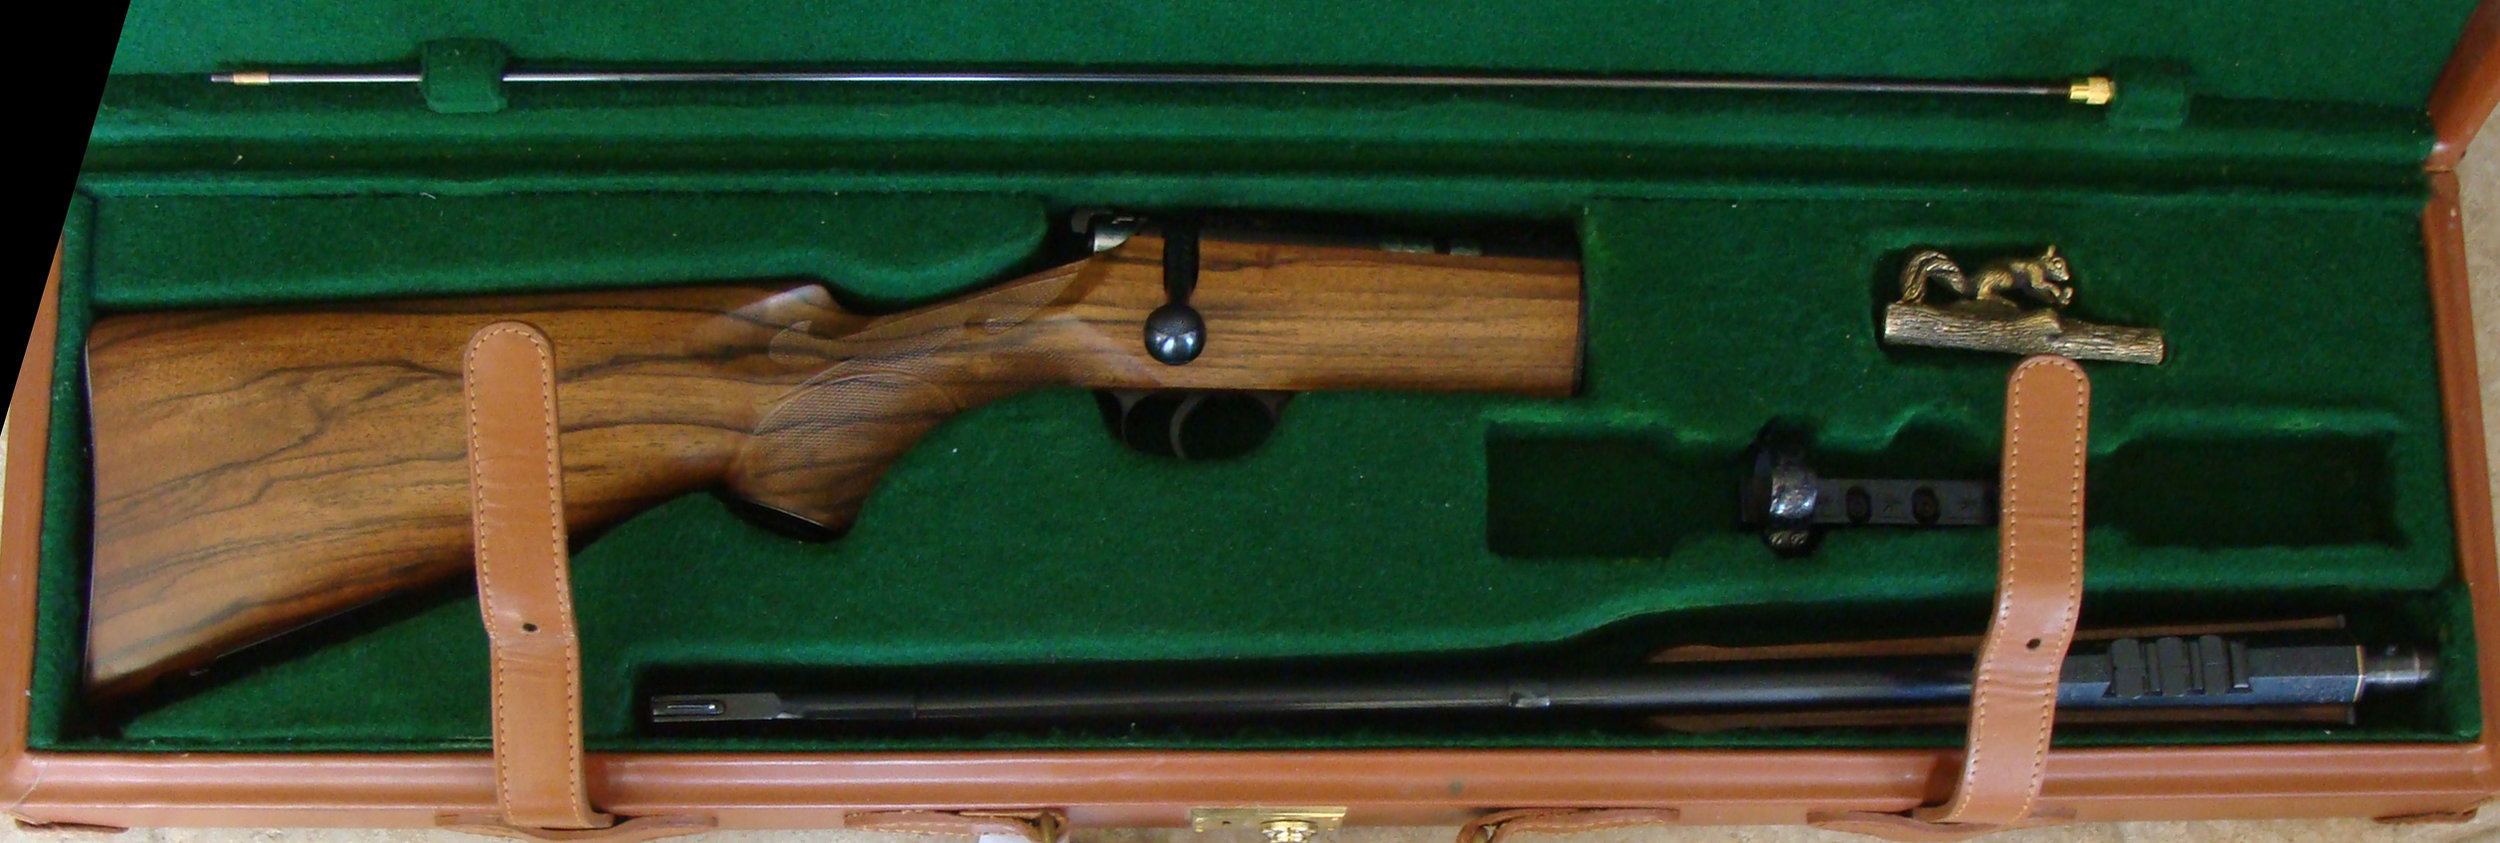 Extremely Rare One of One Fully Custom 22 Rifle Take down Highly Engraved